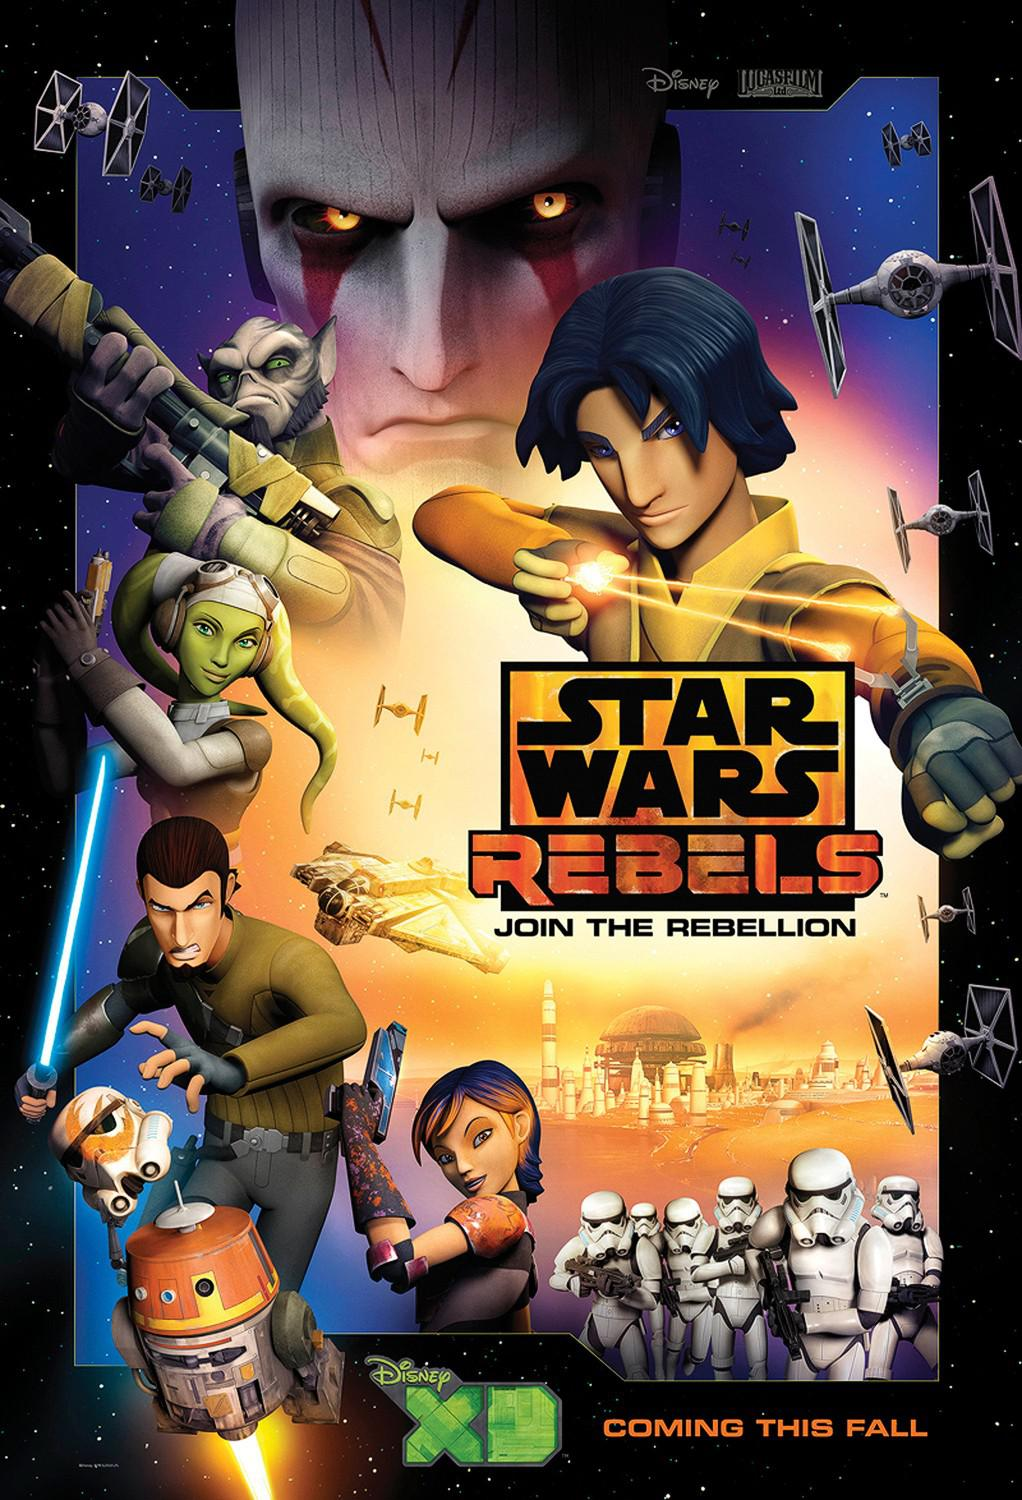 Star Wars Rebels - animated